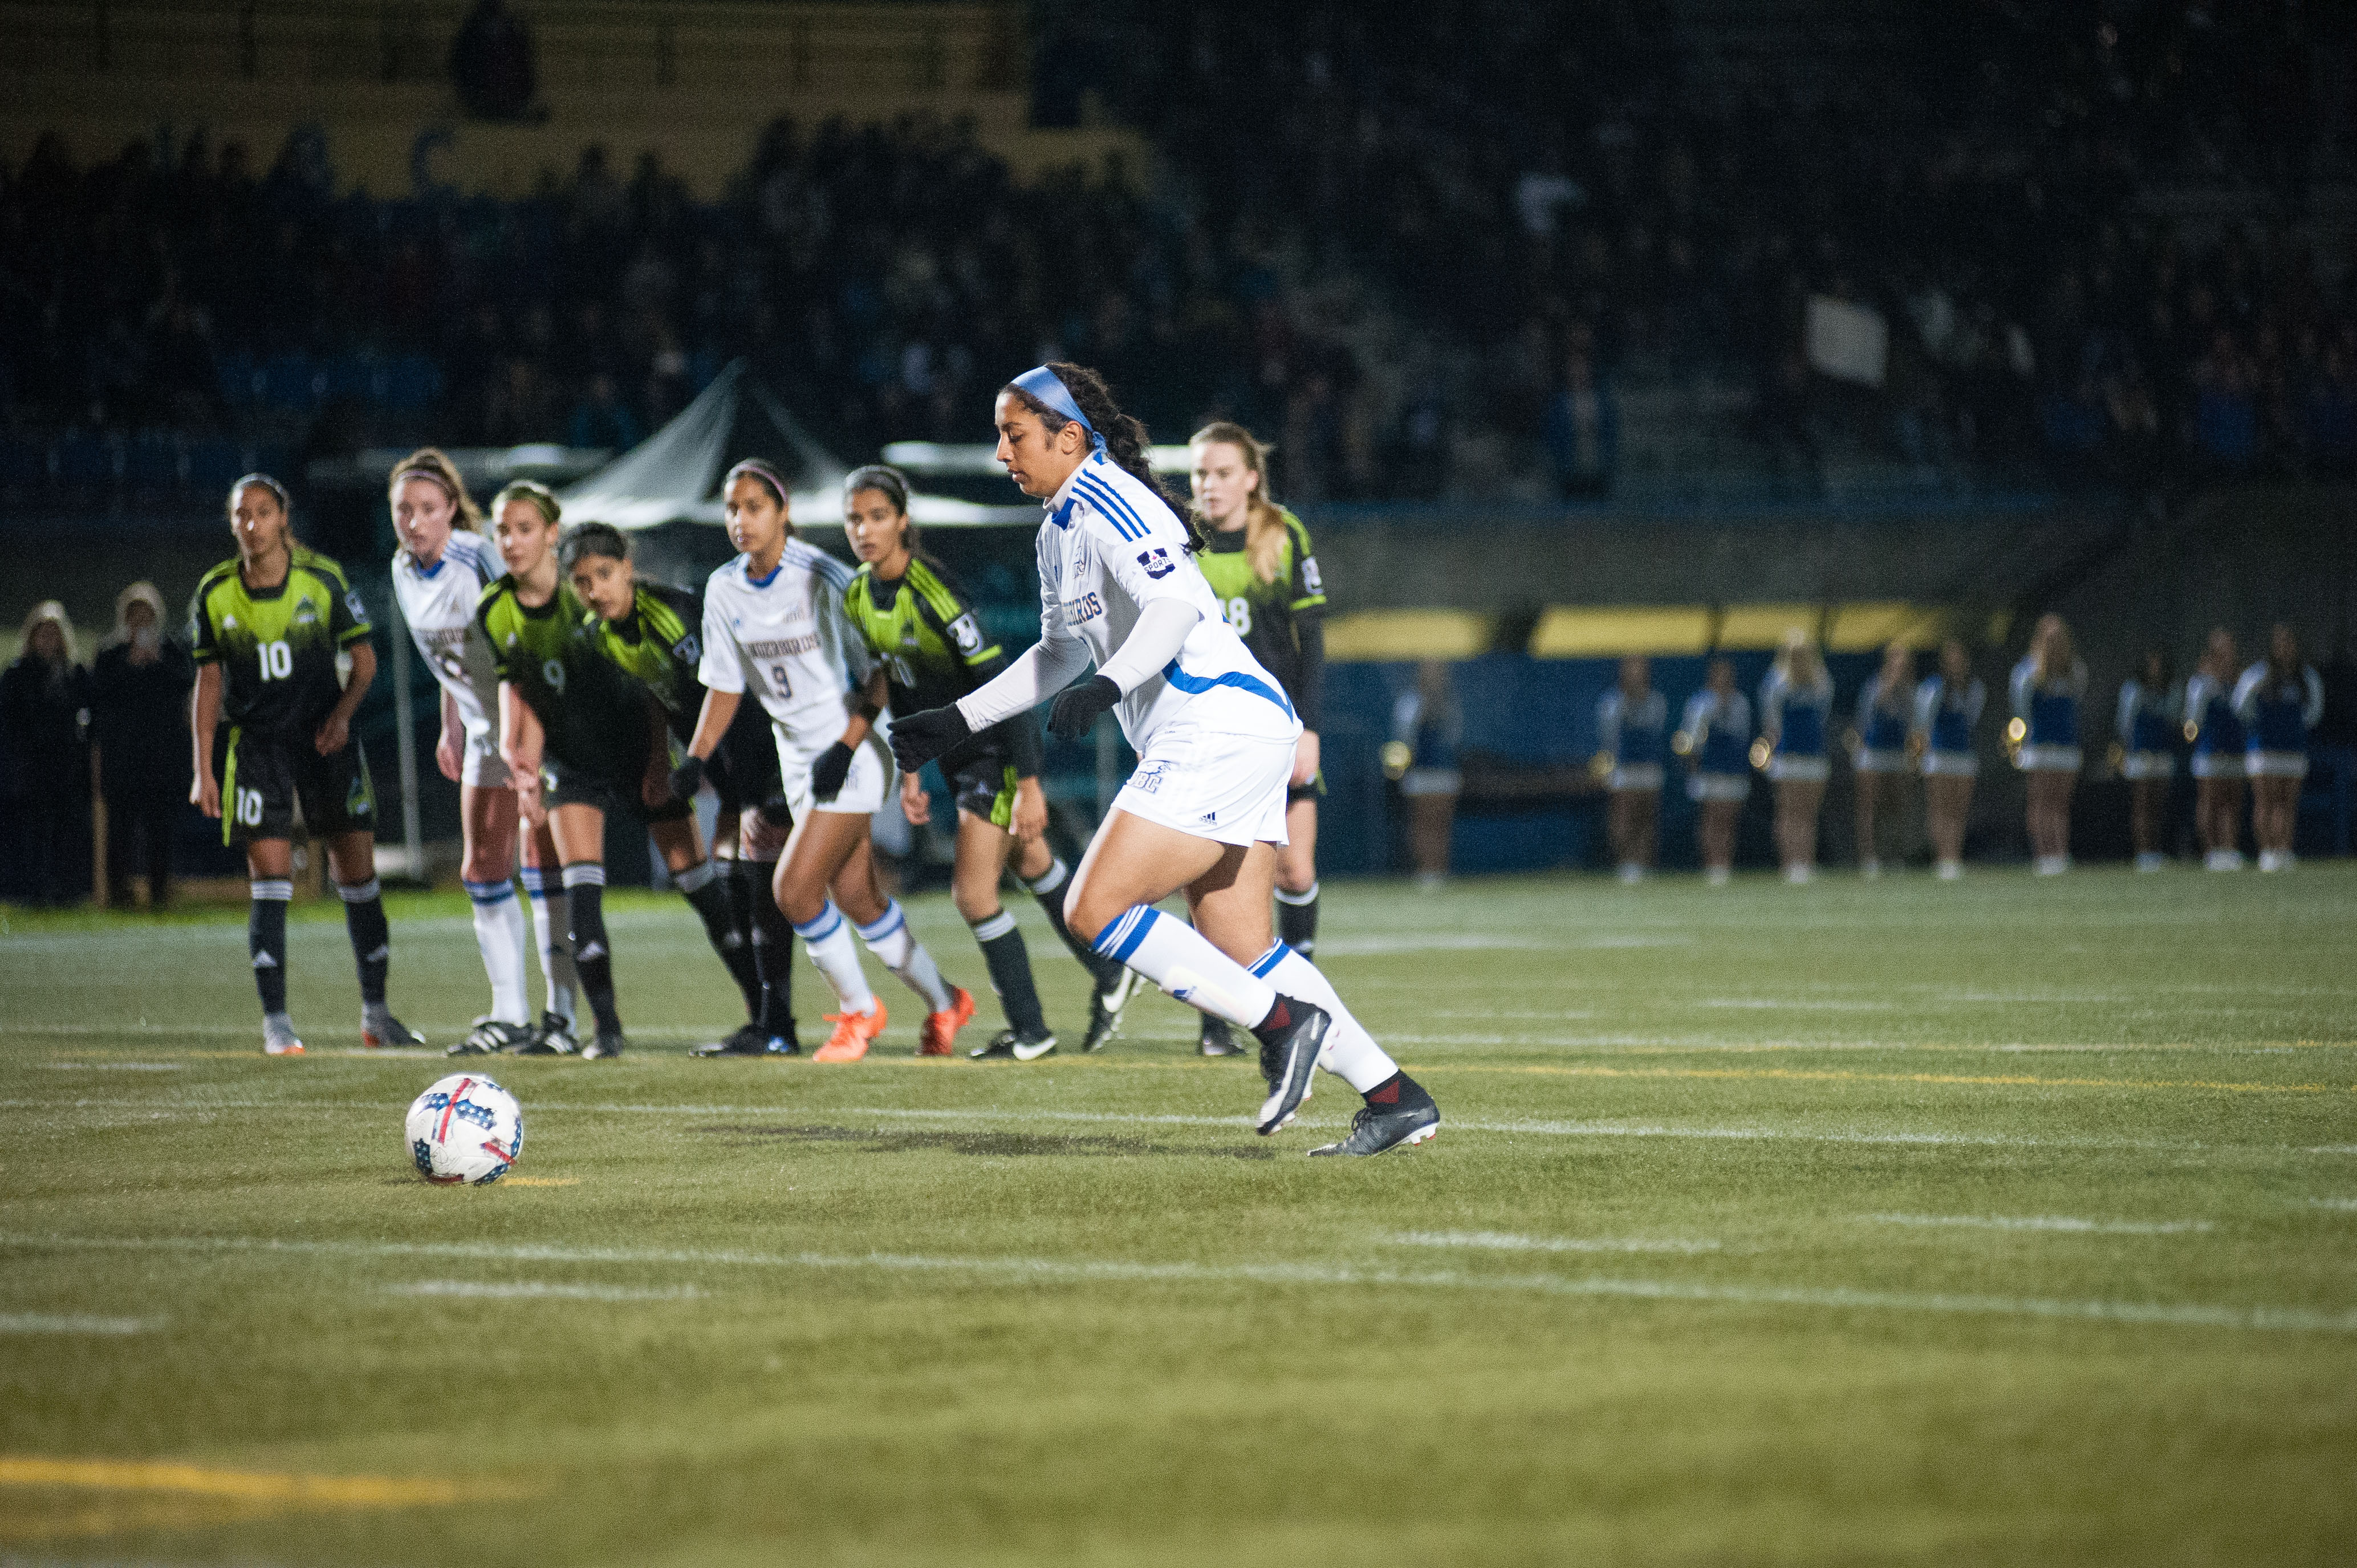 Aman Shergill scored two of UBC's three goals at Thunderstruck.